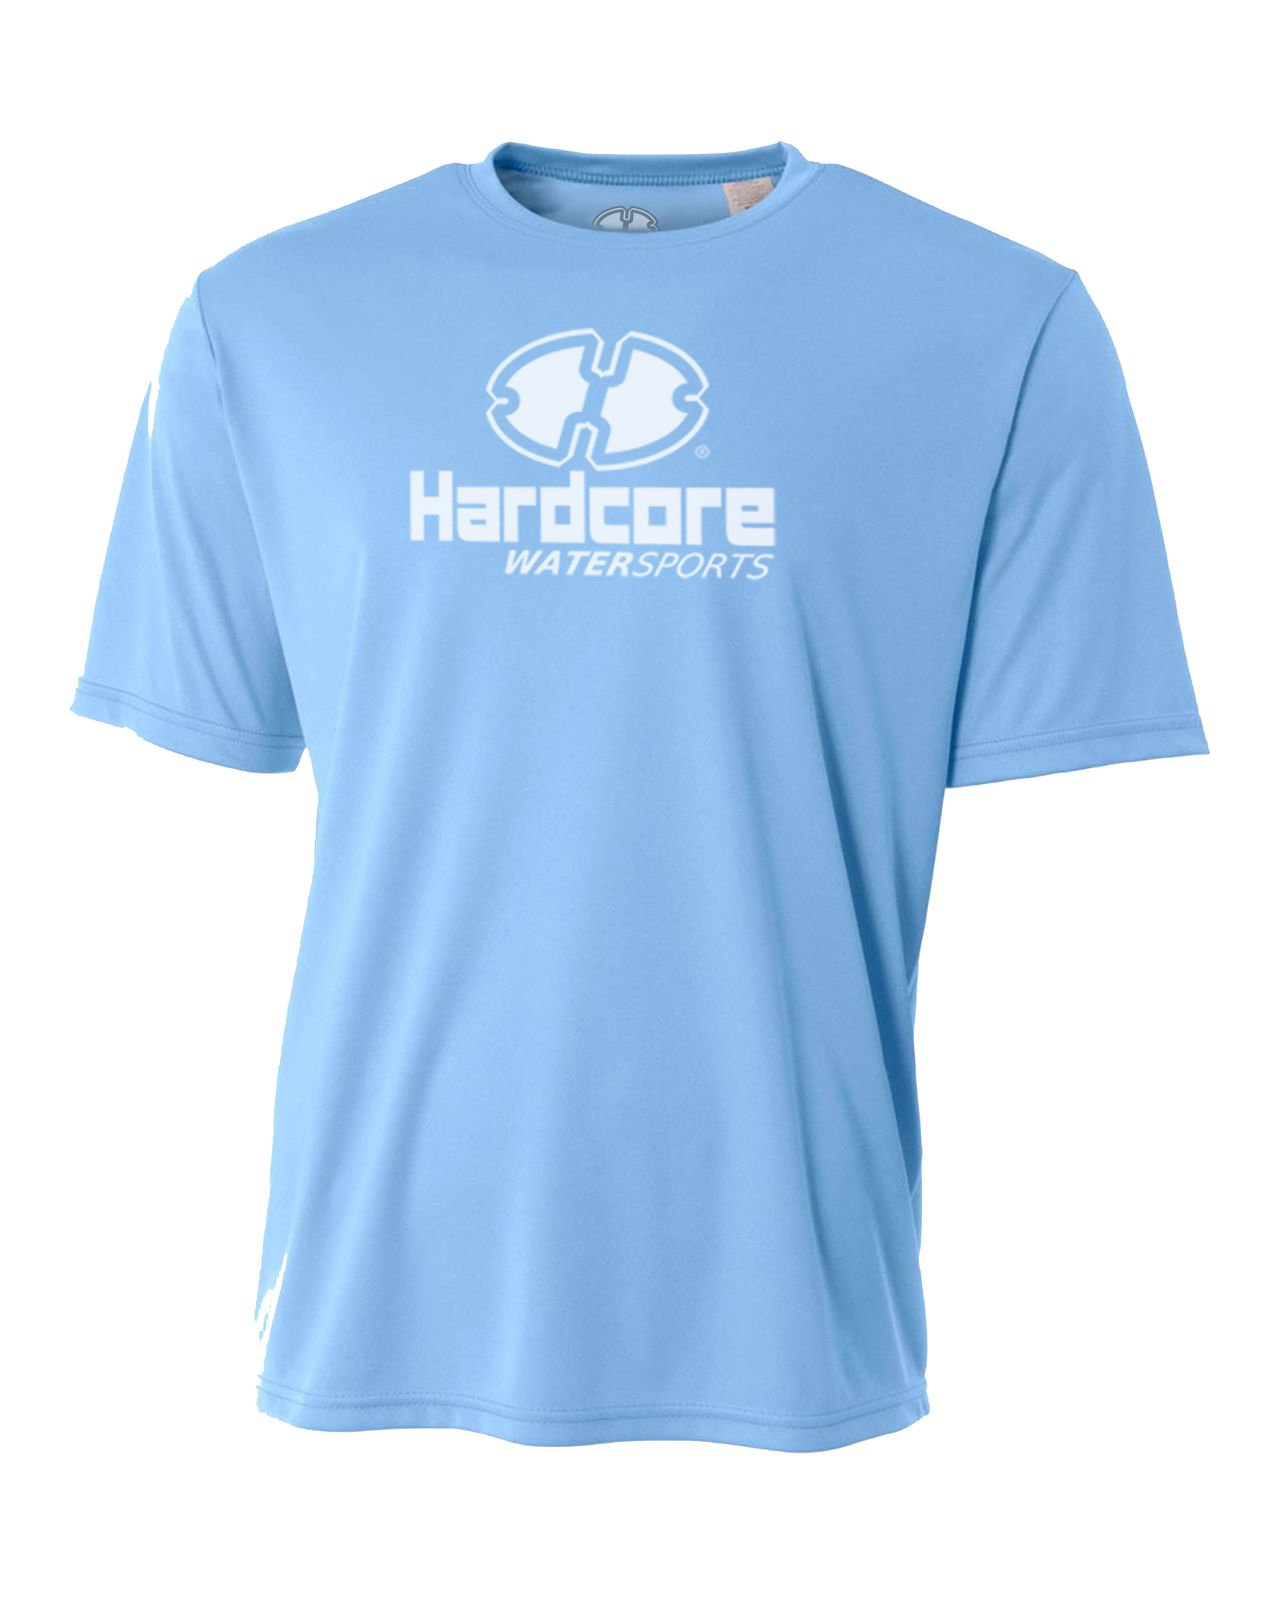 Hardcore Water Sports Mens Rash Guard Surf Swim Shirt SPF Protection Loose Fit Light Blue